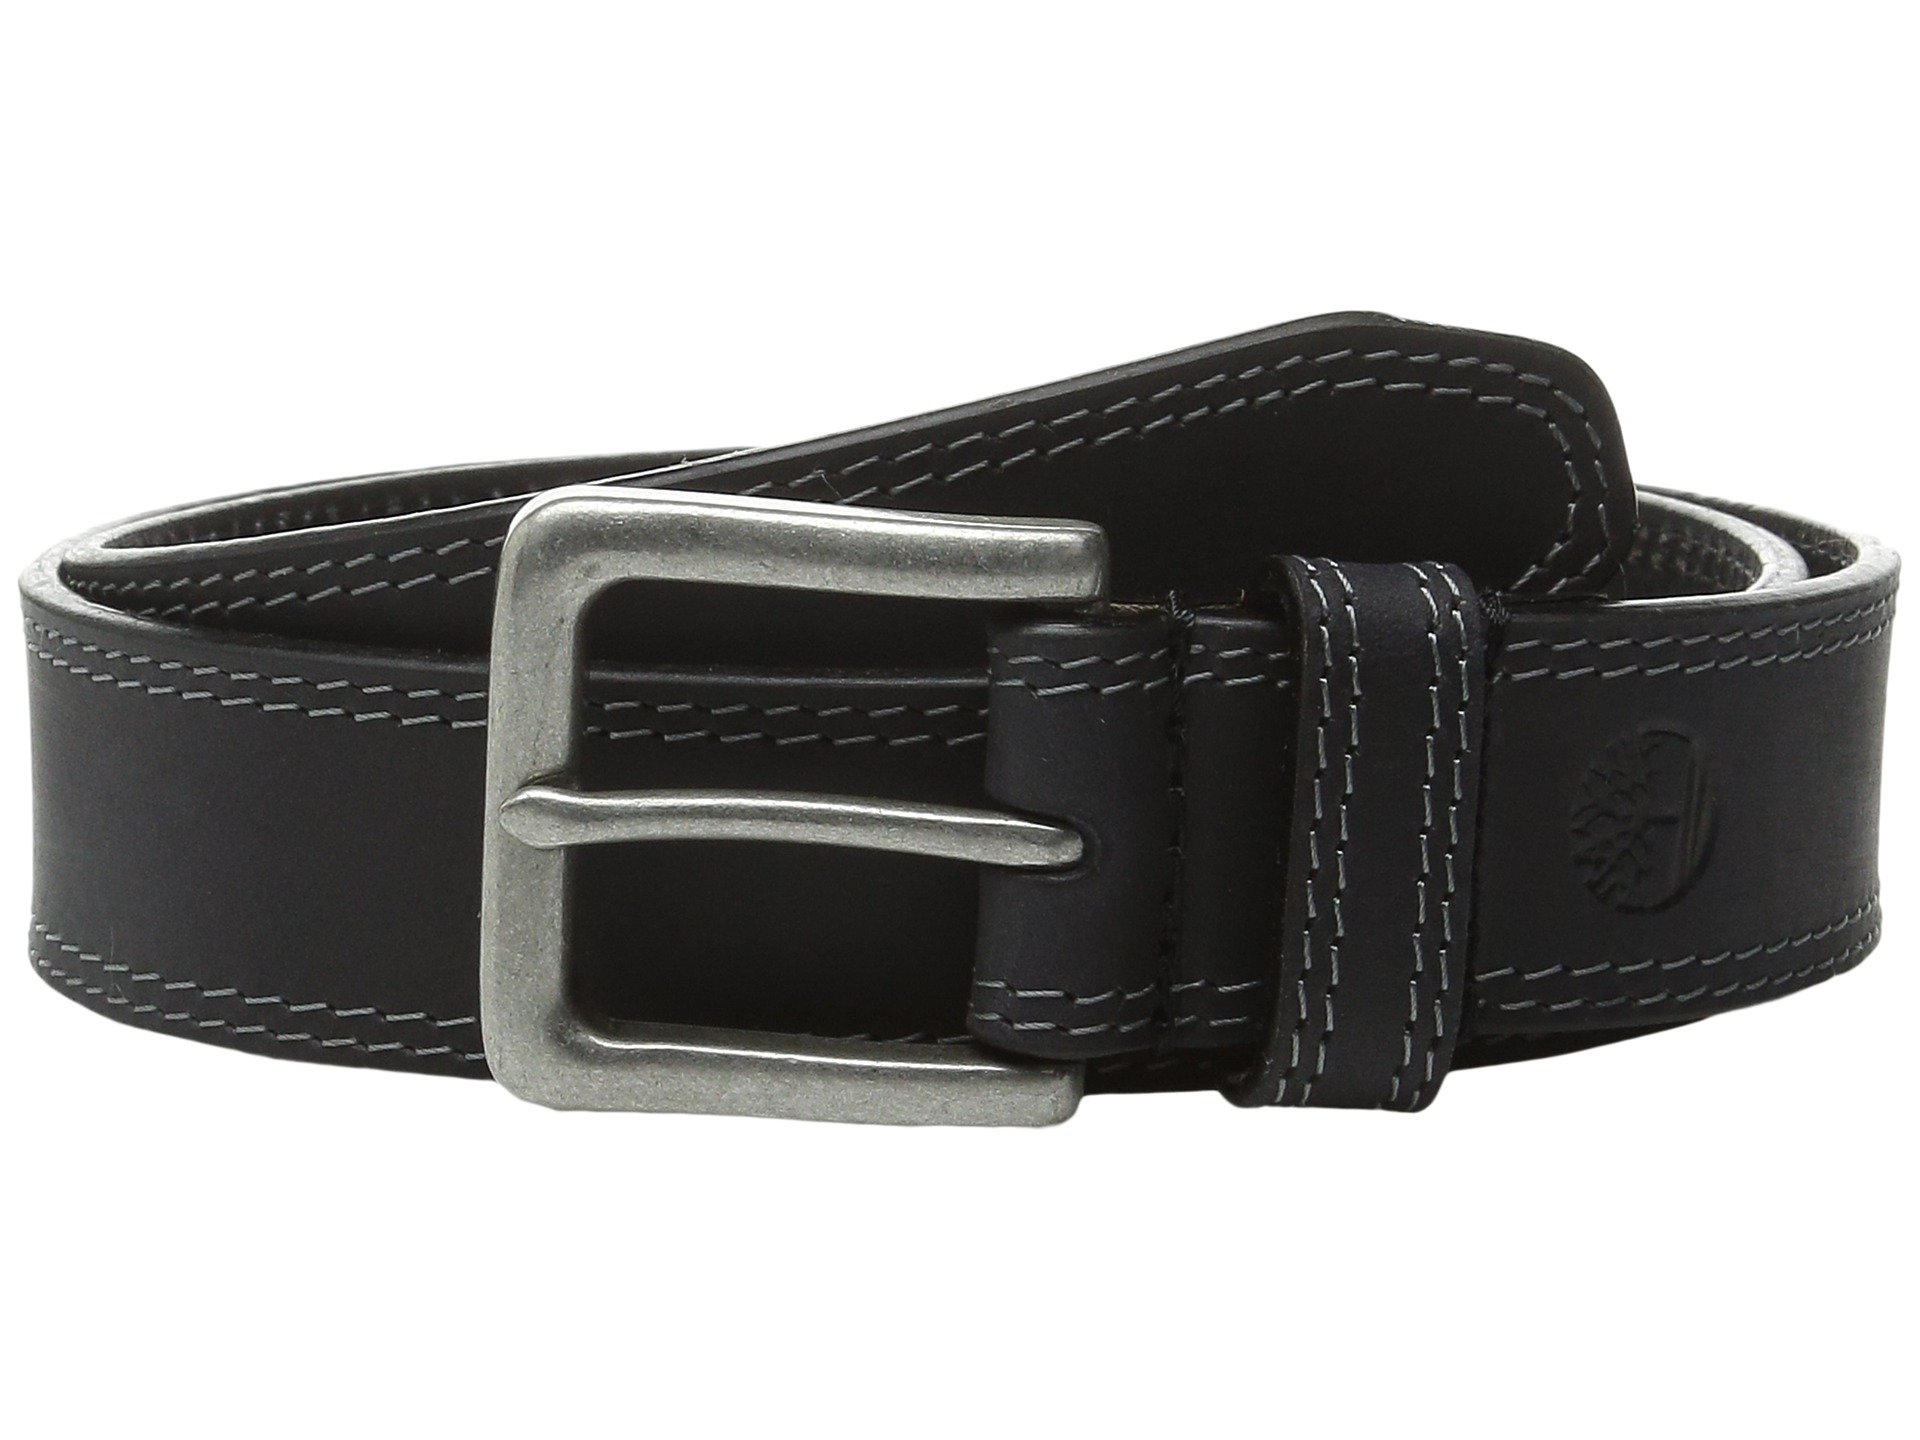 Correa o Cinturon para Hombre Timberland Boot Leather Belt  + Timberland en VeoyCompro.net